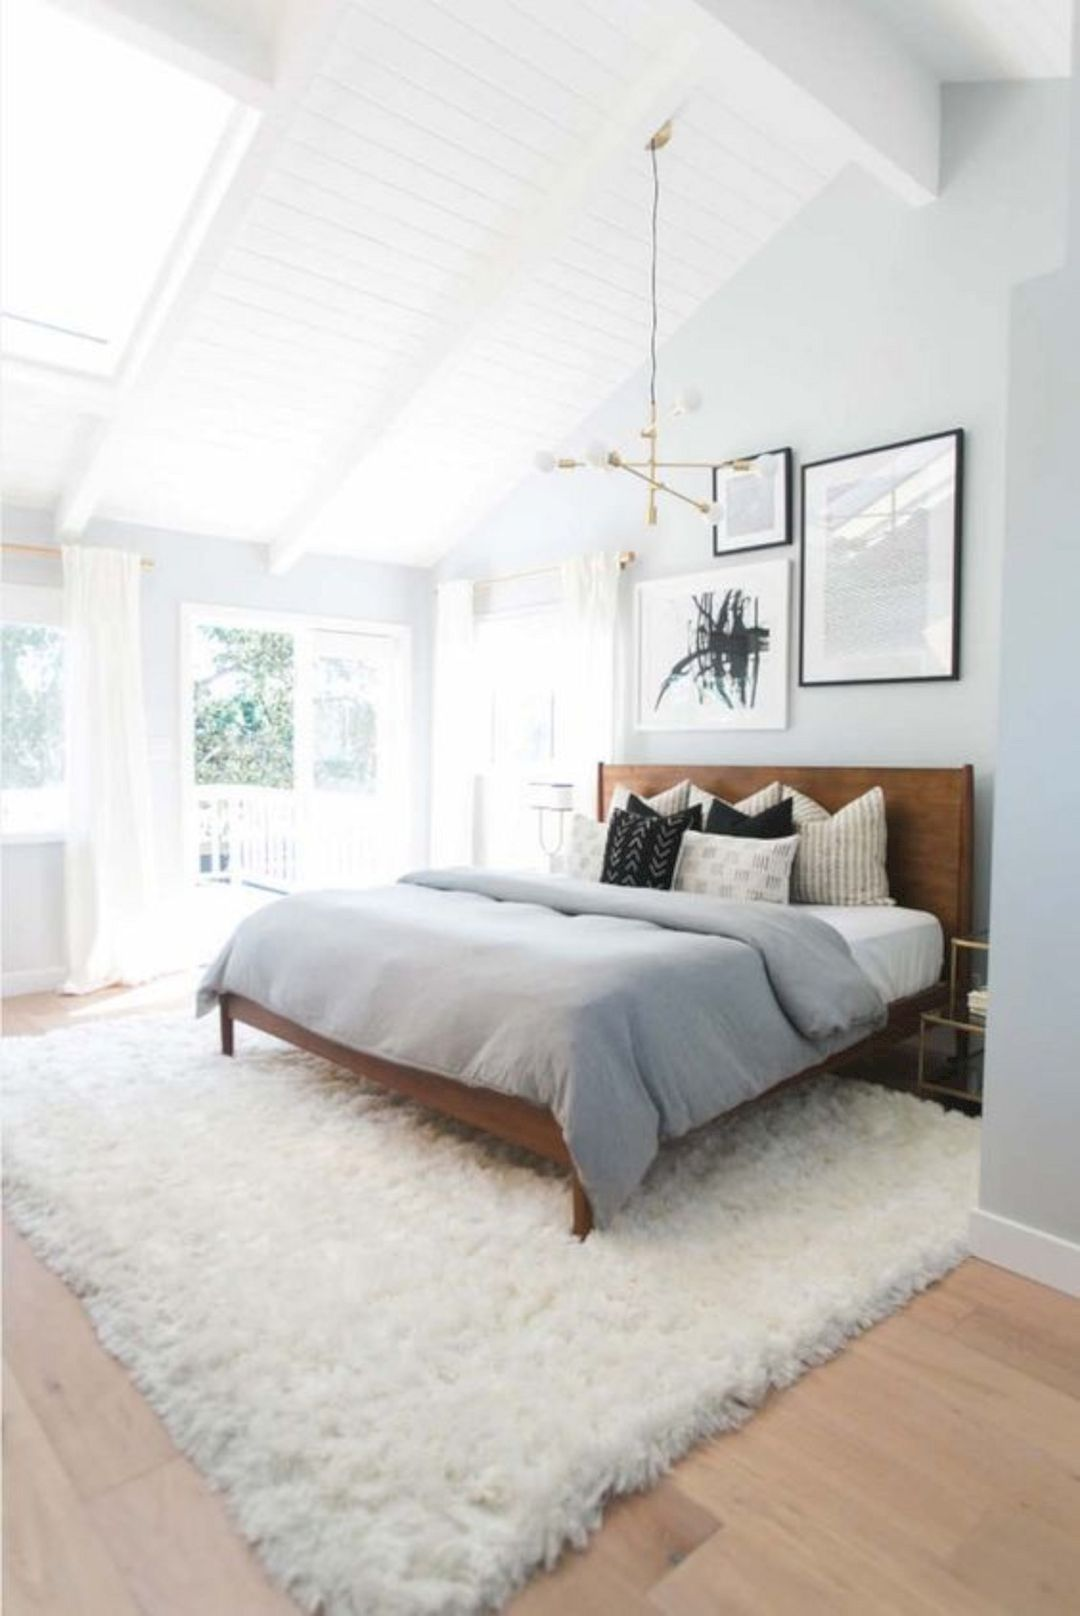 Best Spacious And Airy Bedroom Vaulted Shiplap Ceilings 640 x 480